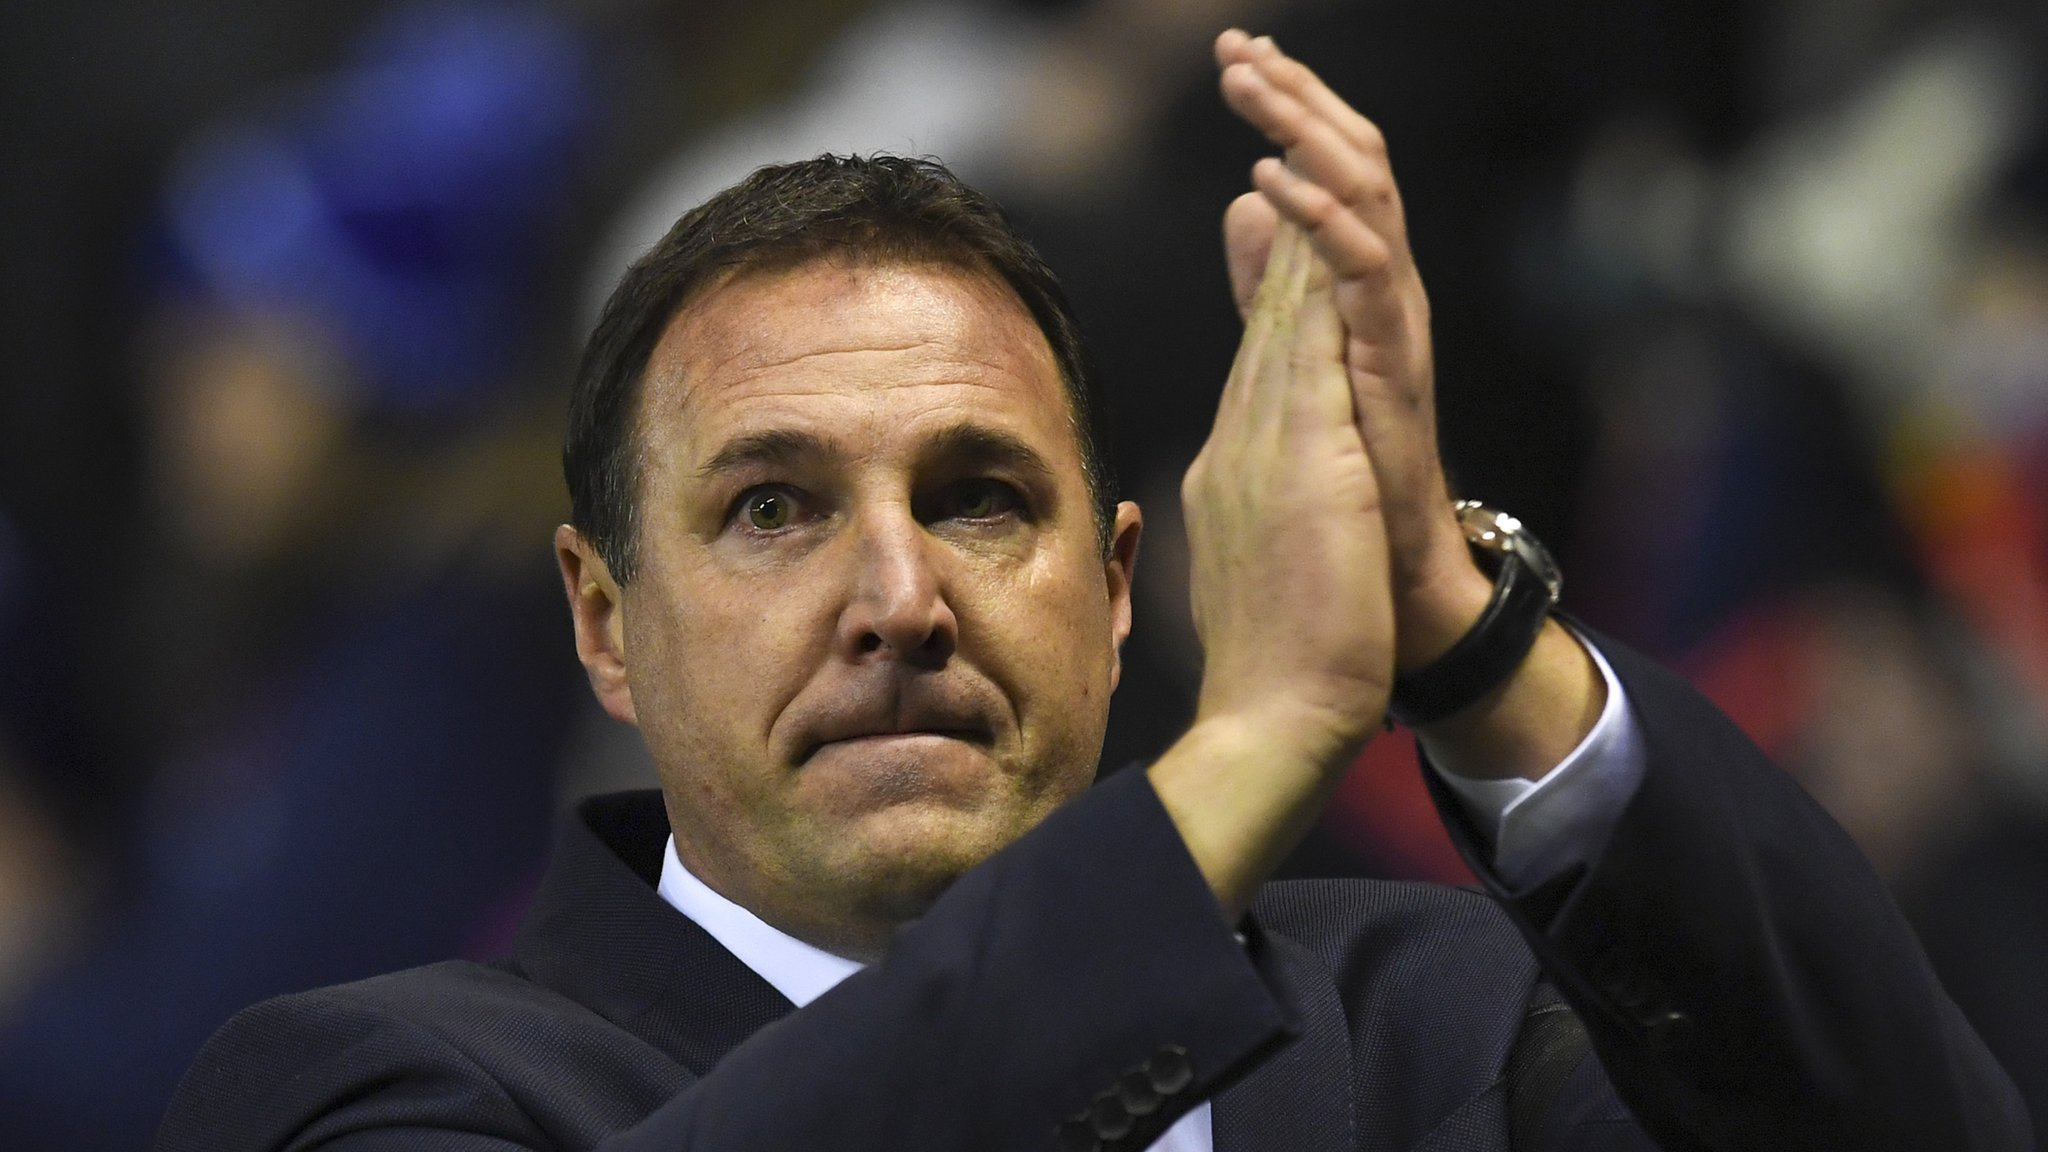 Scotland: Malky Mackay among names being considered for managerial vacancy